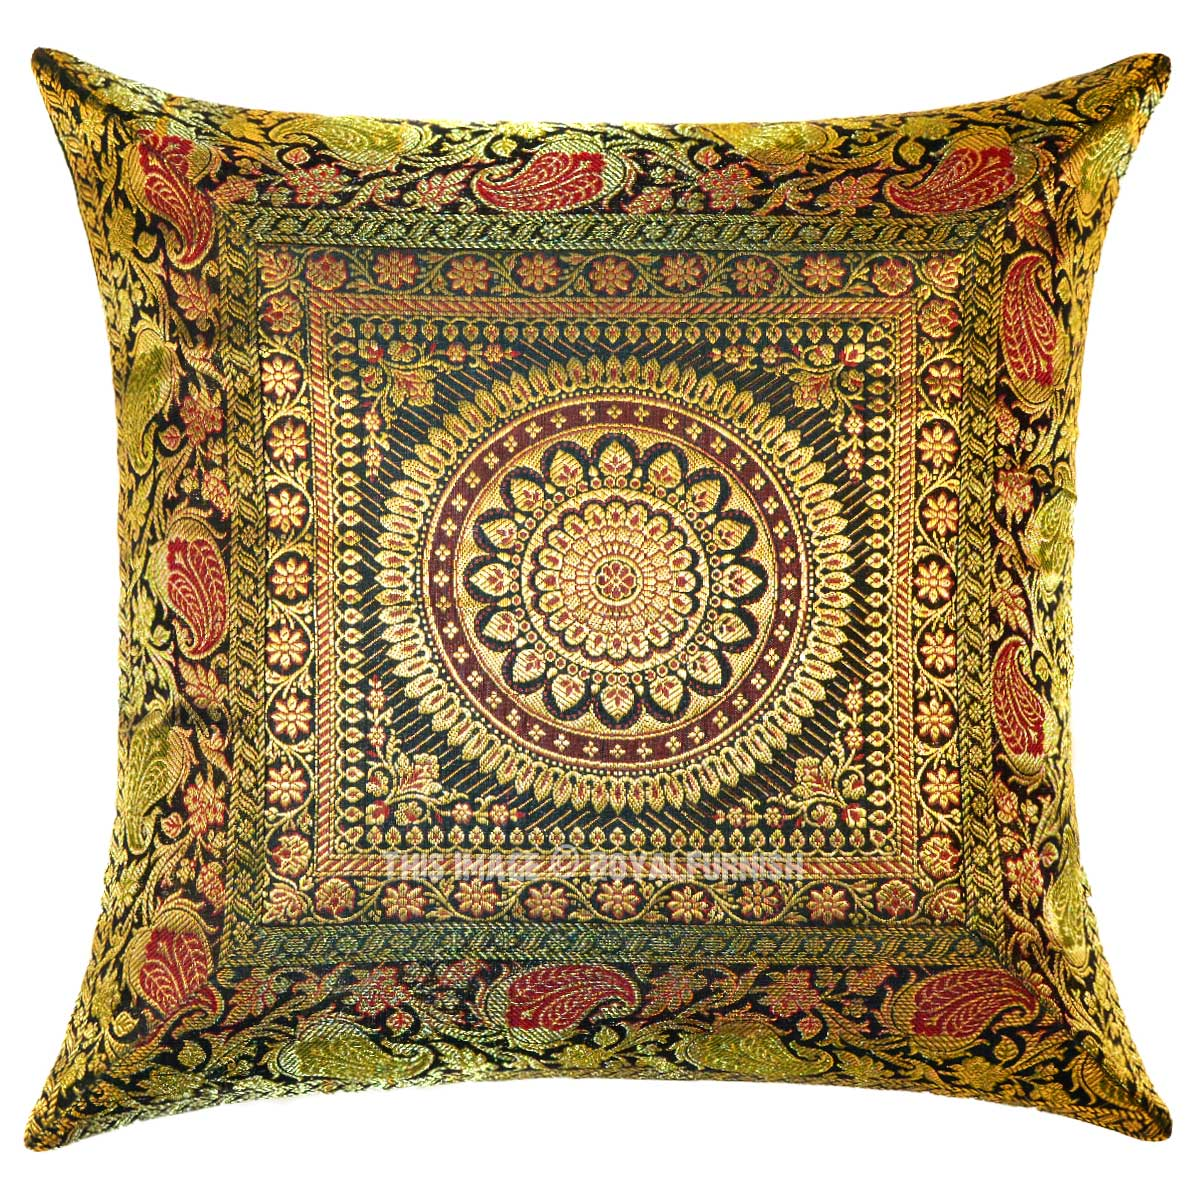 Unique Decorative Throw Pillows : Dark Green Unique Floral Medallion Circle Decorative Silk Square Pillow Cover - RoyalFurnish.com